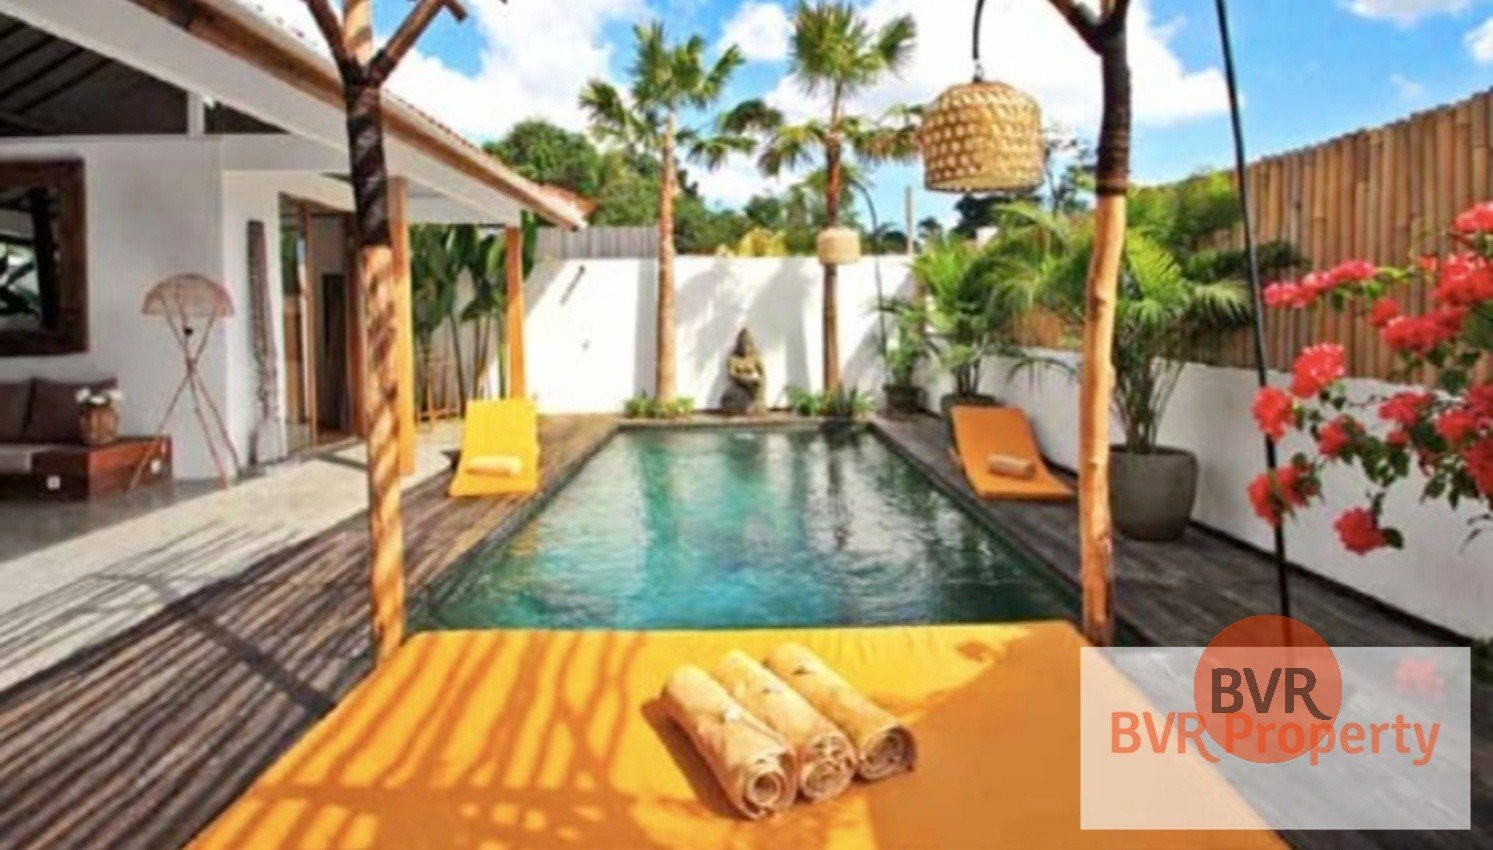 OFF THE PLAN 3 BEDR LUXURY VILLAS IN LEMBONGAN – FROM 25 TO 50 YEARS LEASE – FOR INVESTORS !!!